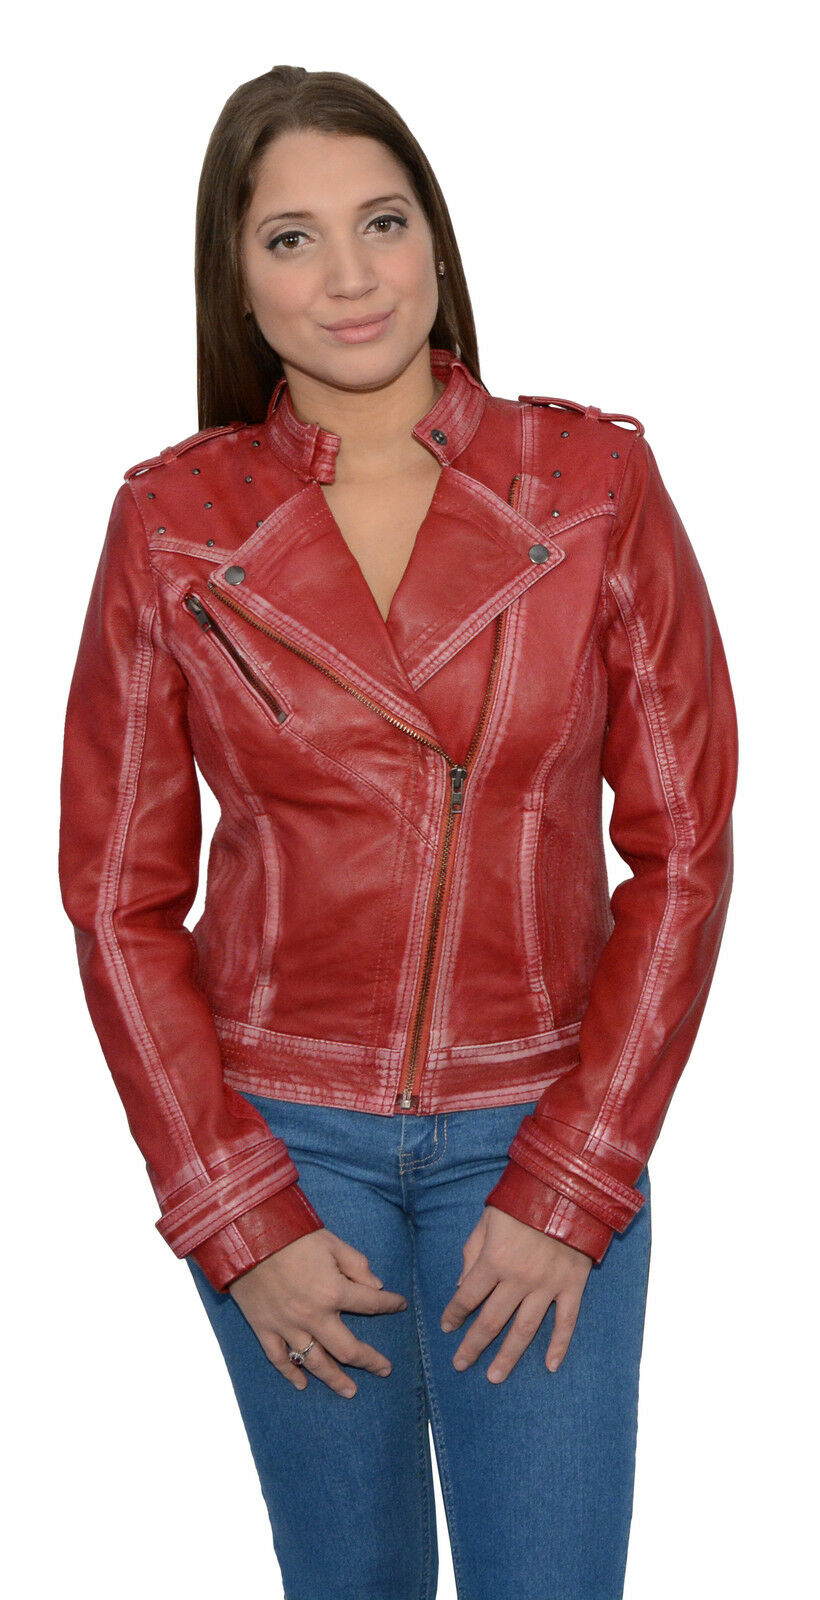 WOMEN'S RACER SHORT FASHION MC STYLE RED blueE COLOR VERY SOFT REAL LEATHER NEW